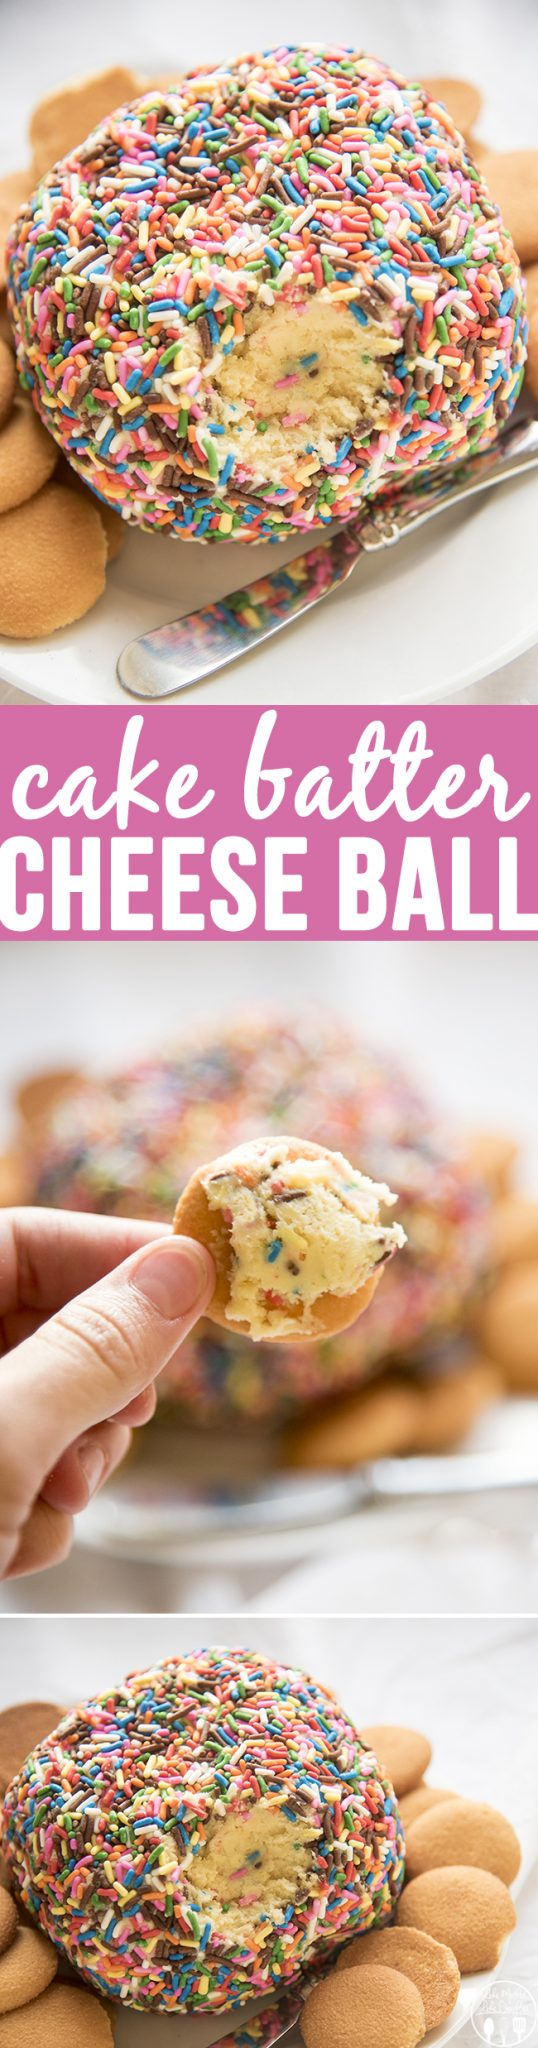 Cake Batter Cheese Ball - This is a delicious dessert cheese ball that tastes just like cake batter. Great for parties or just for a sweet treat!